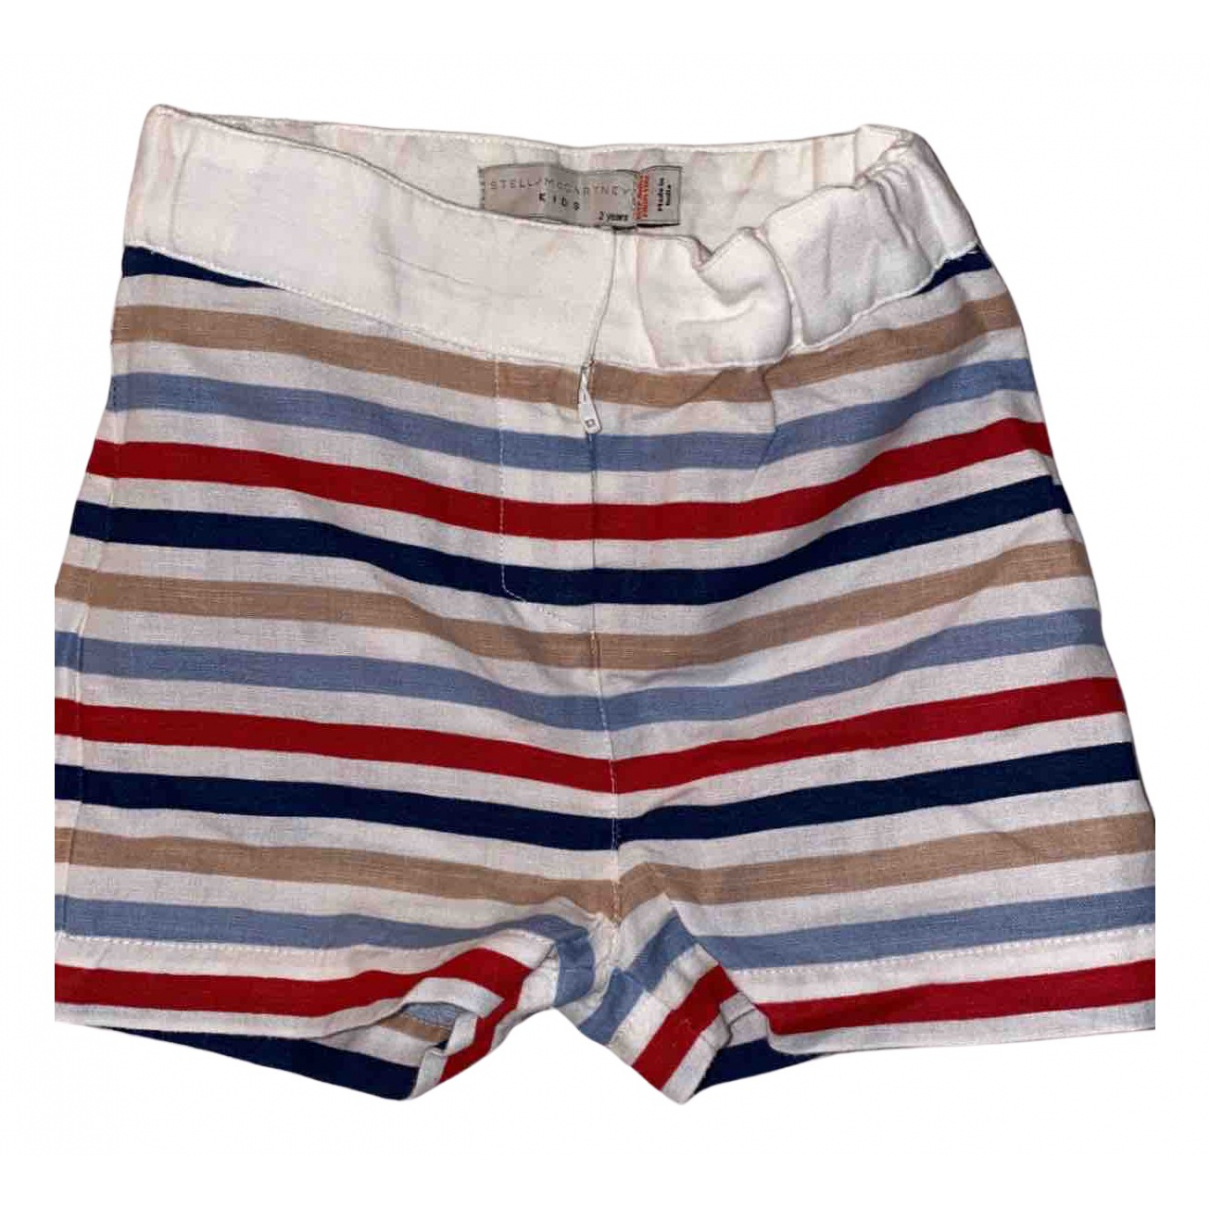 Stella Mccartney Kids N Cotton Shorts for Kids 2 years - until 34 inches UK